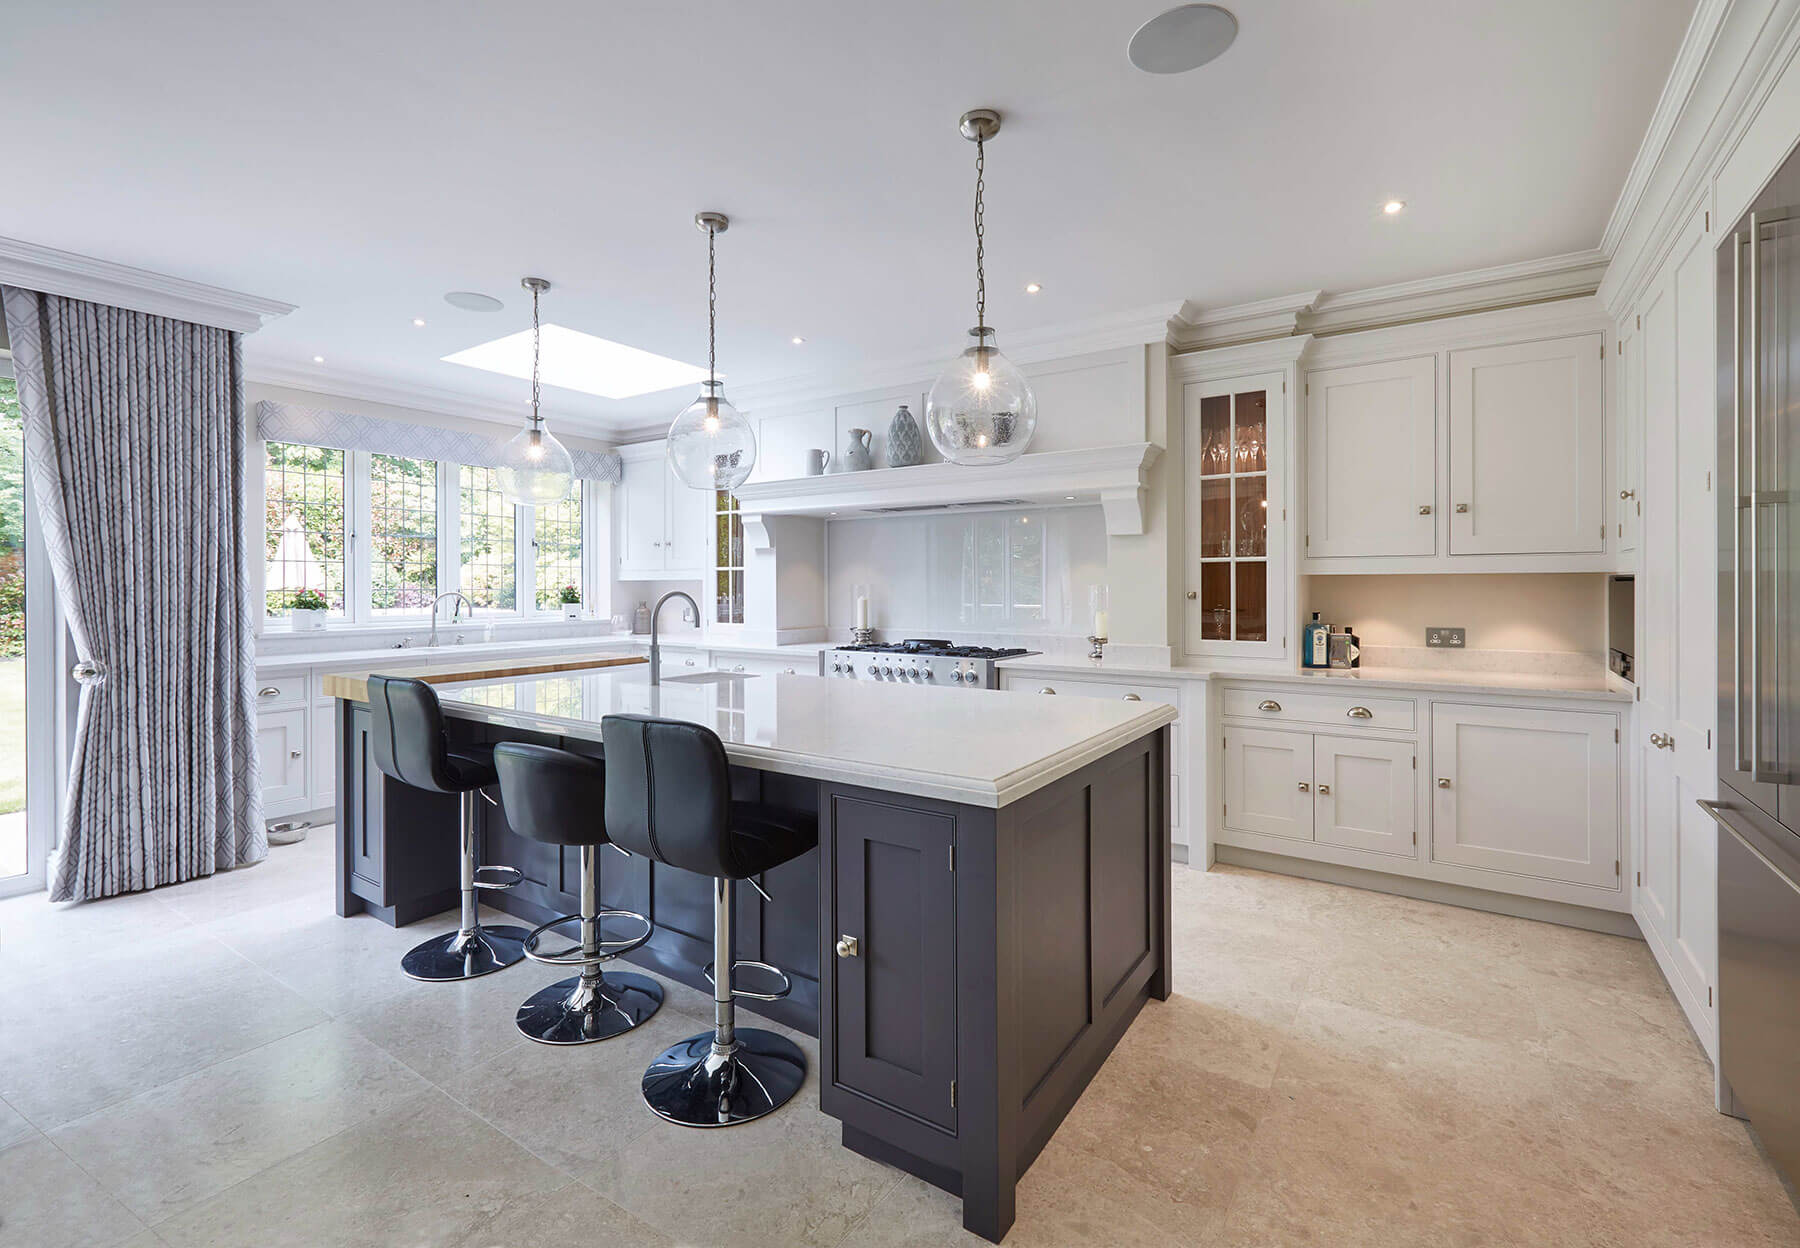 Southbank Building & Development | Homes | Luxury Kitchen